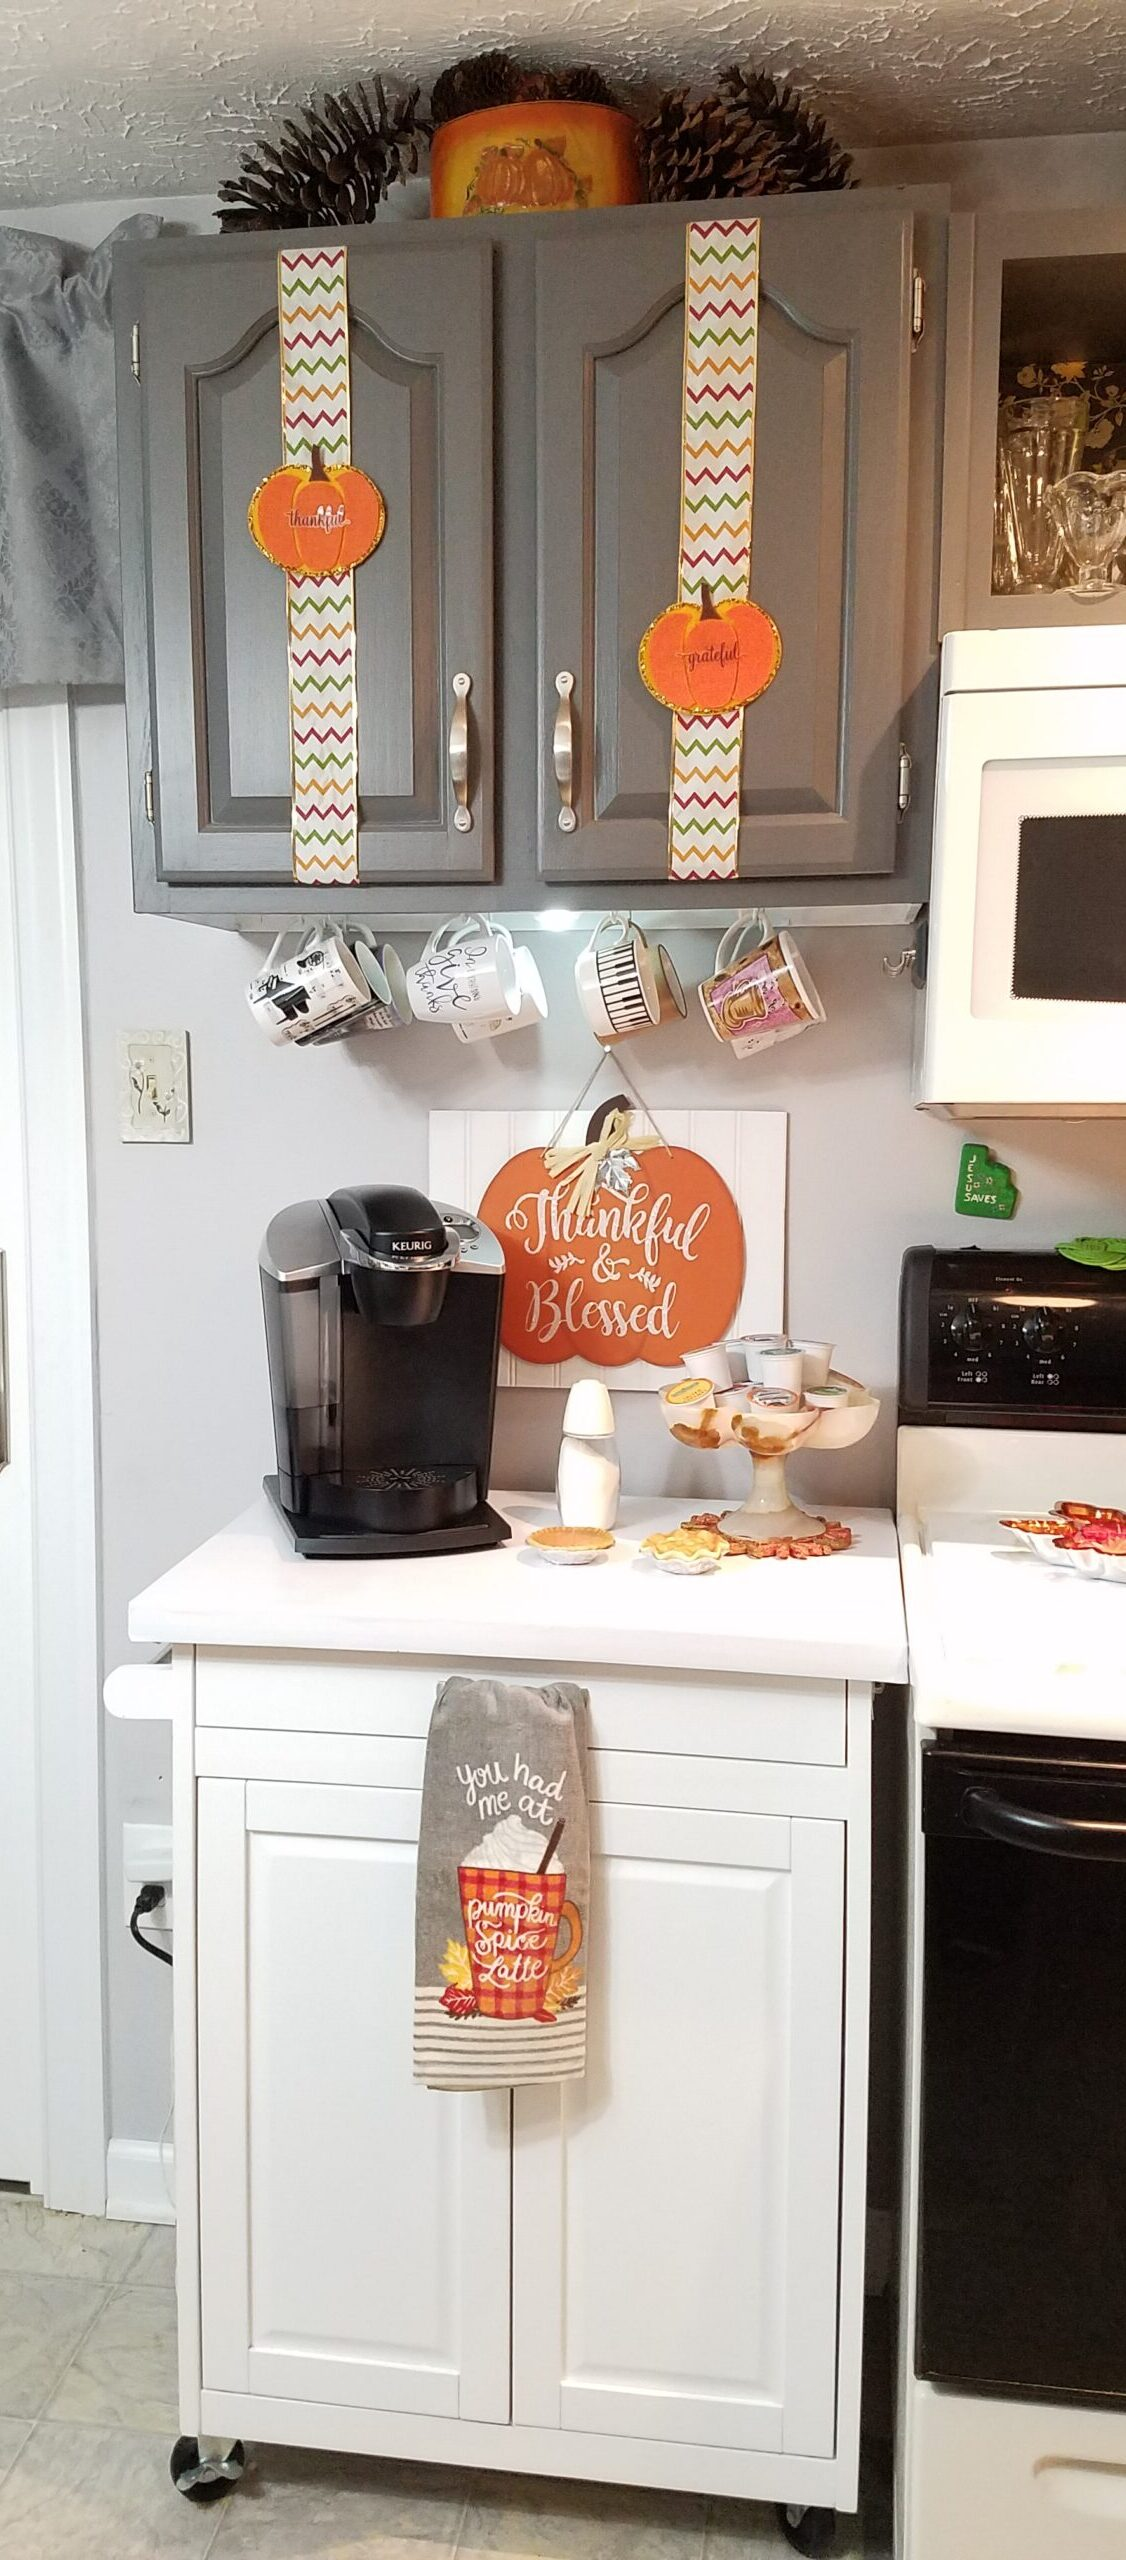 Kitchen Coffee Station all decorated with Pumpkins